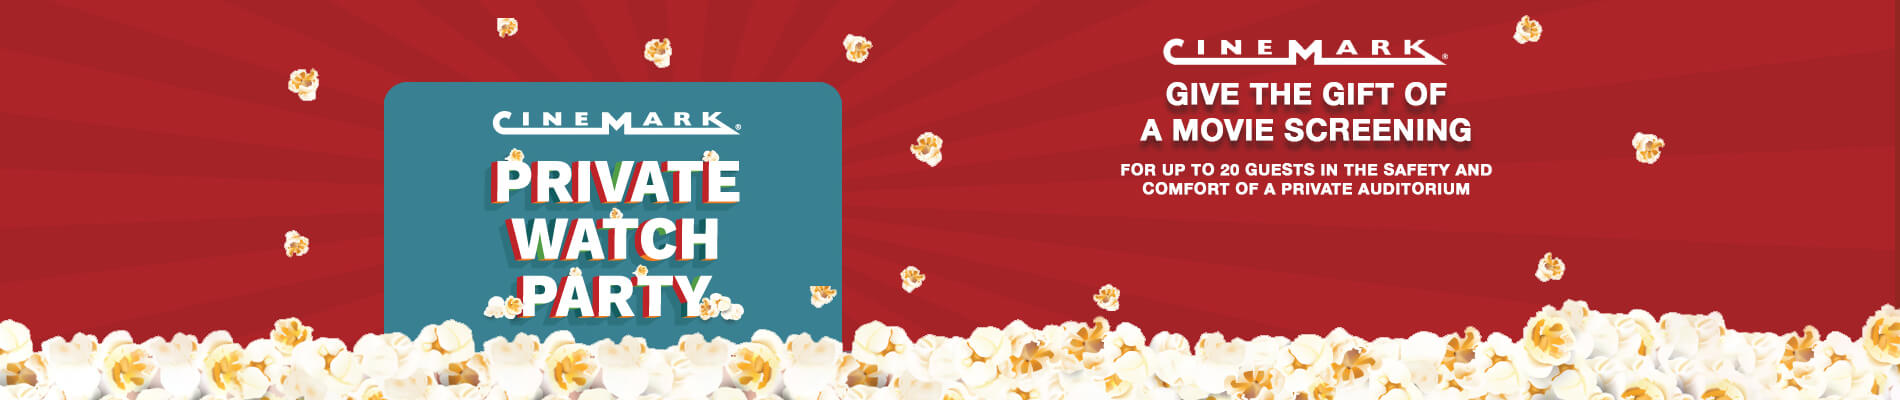 Cinemark Private Watch Party eGift Card